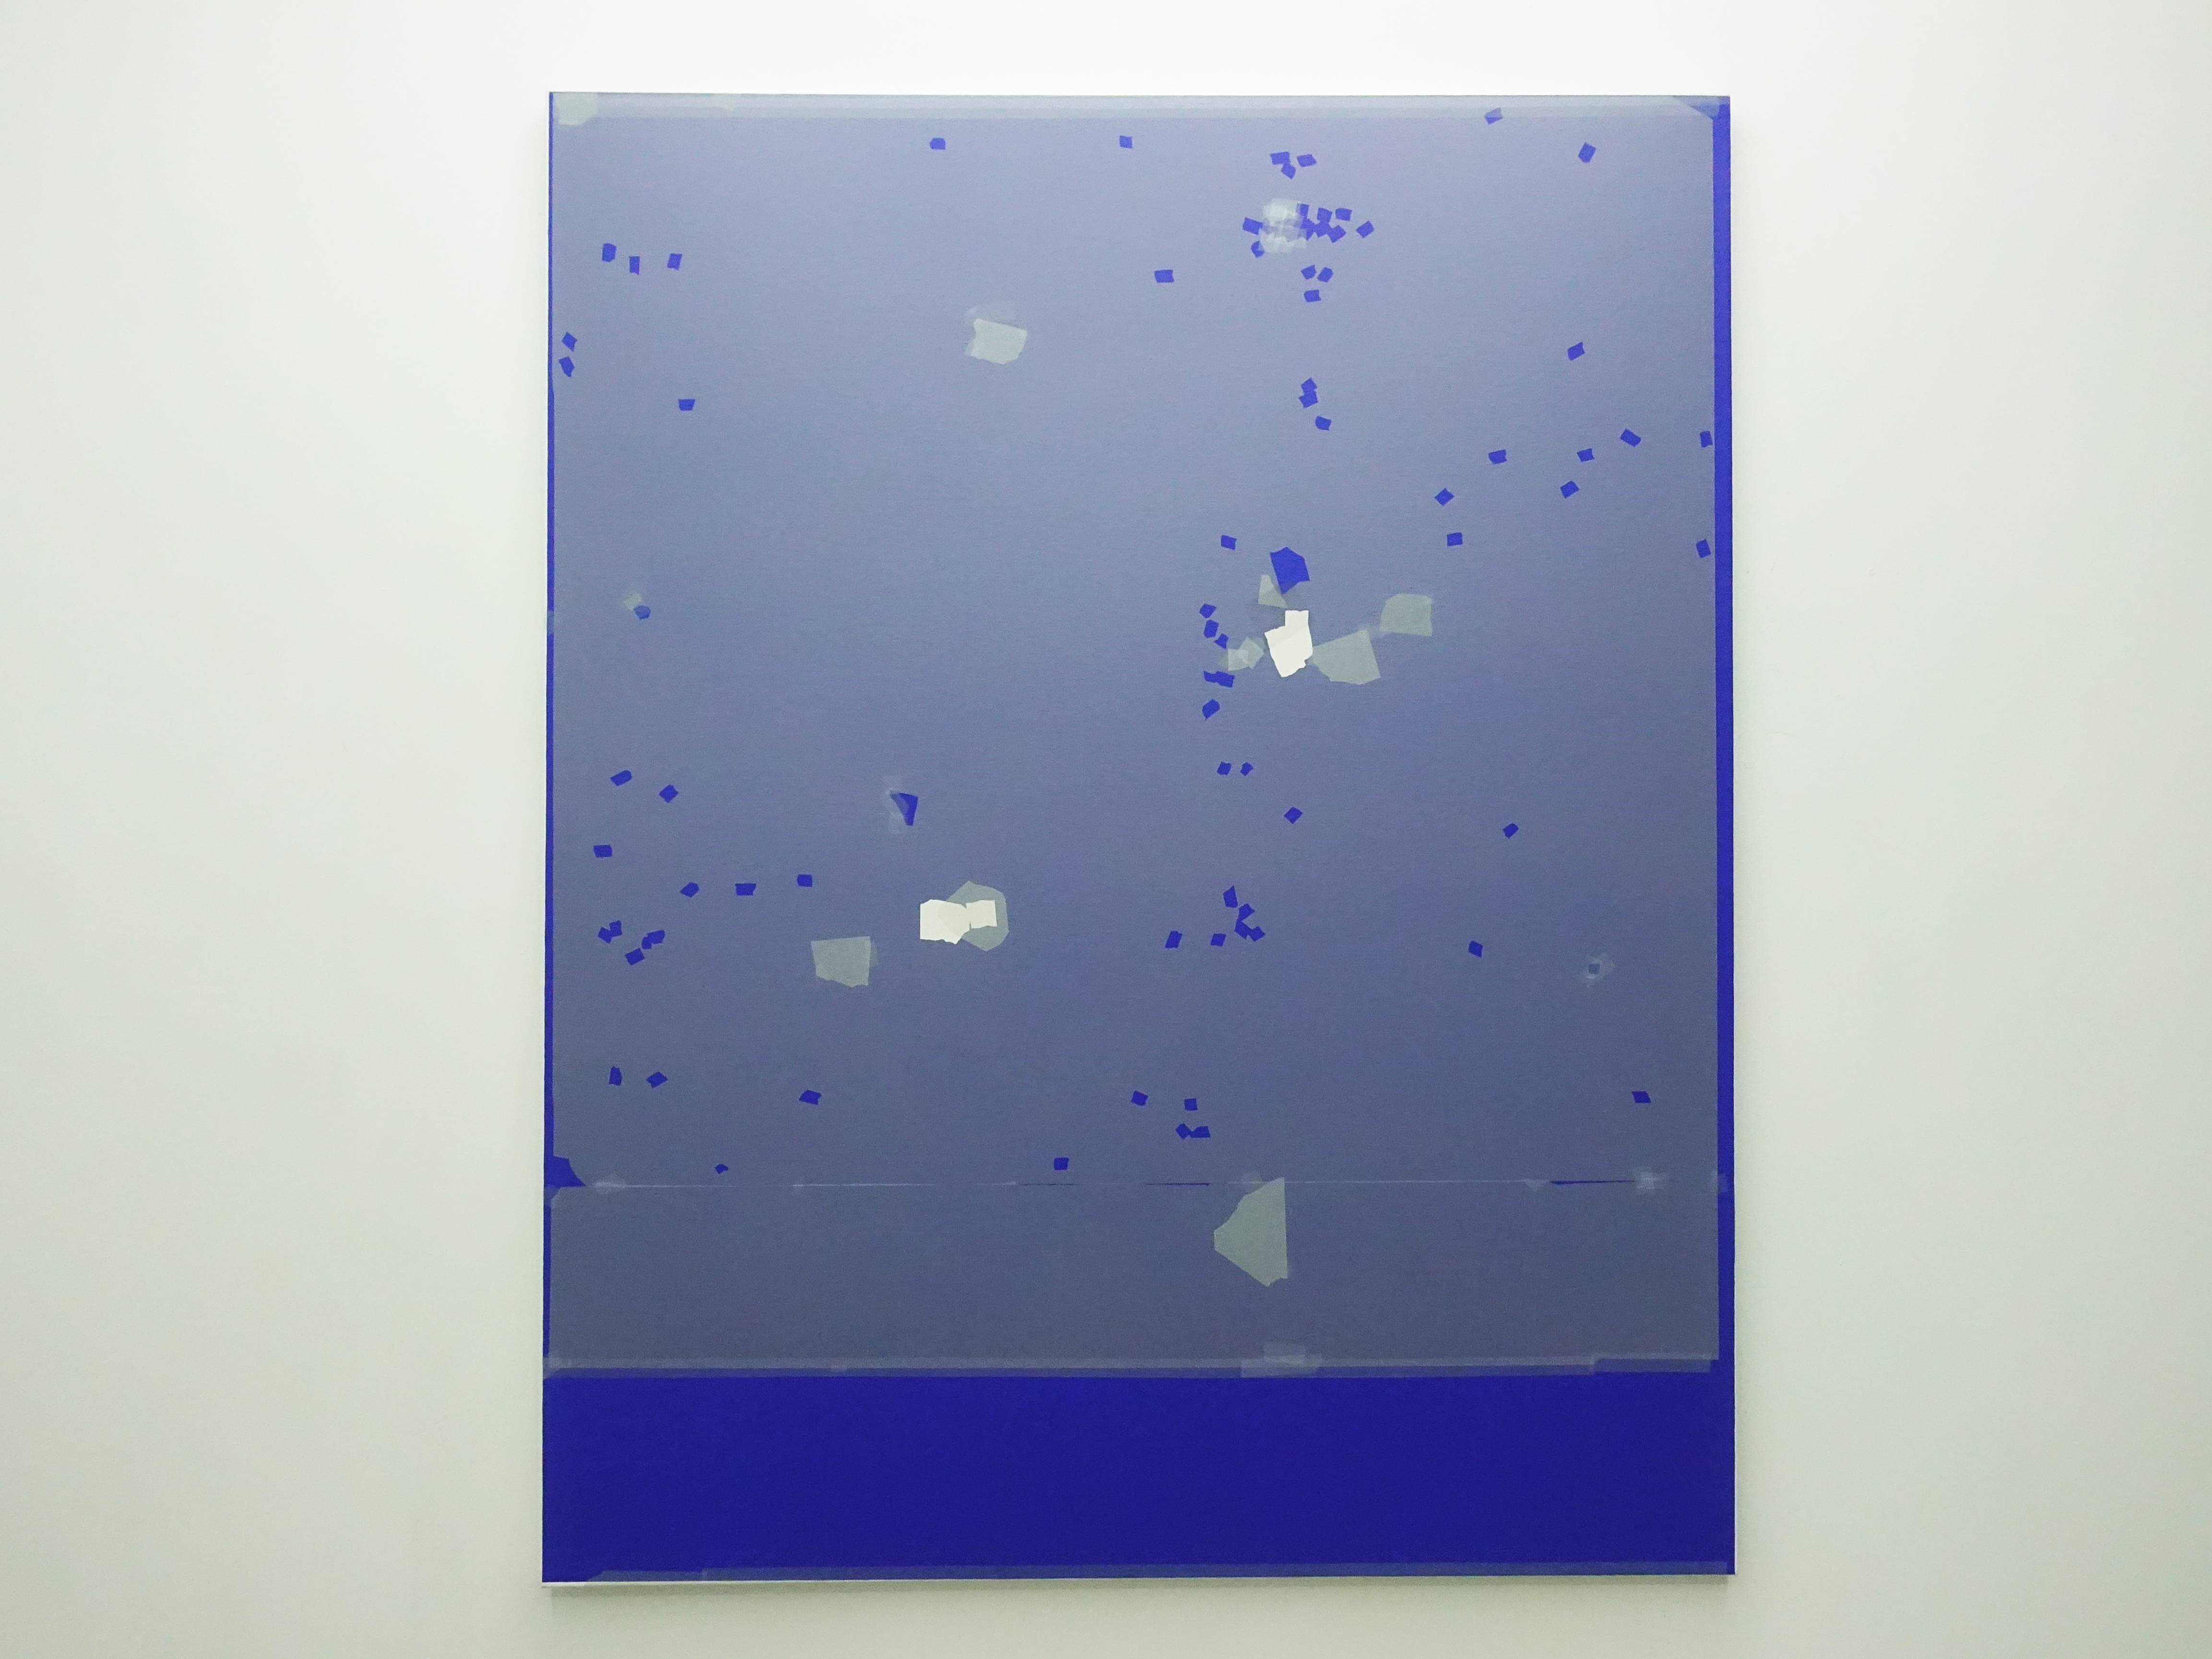 Kees Goudzwaard,《Fragments And Holes碎片與空隙》,Oil on canvas,140 x 110 cm,2019。